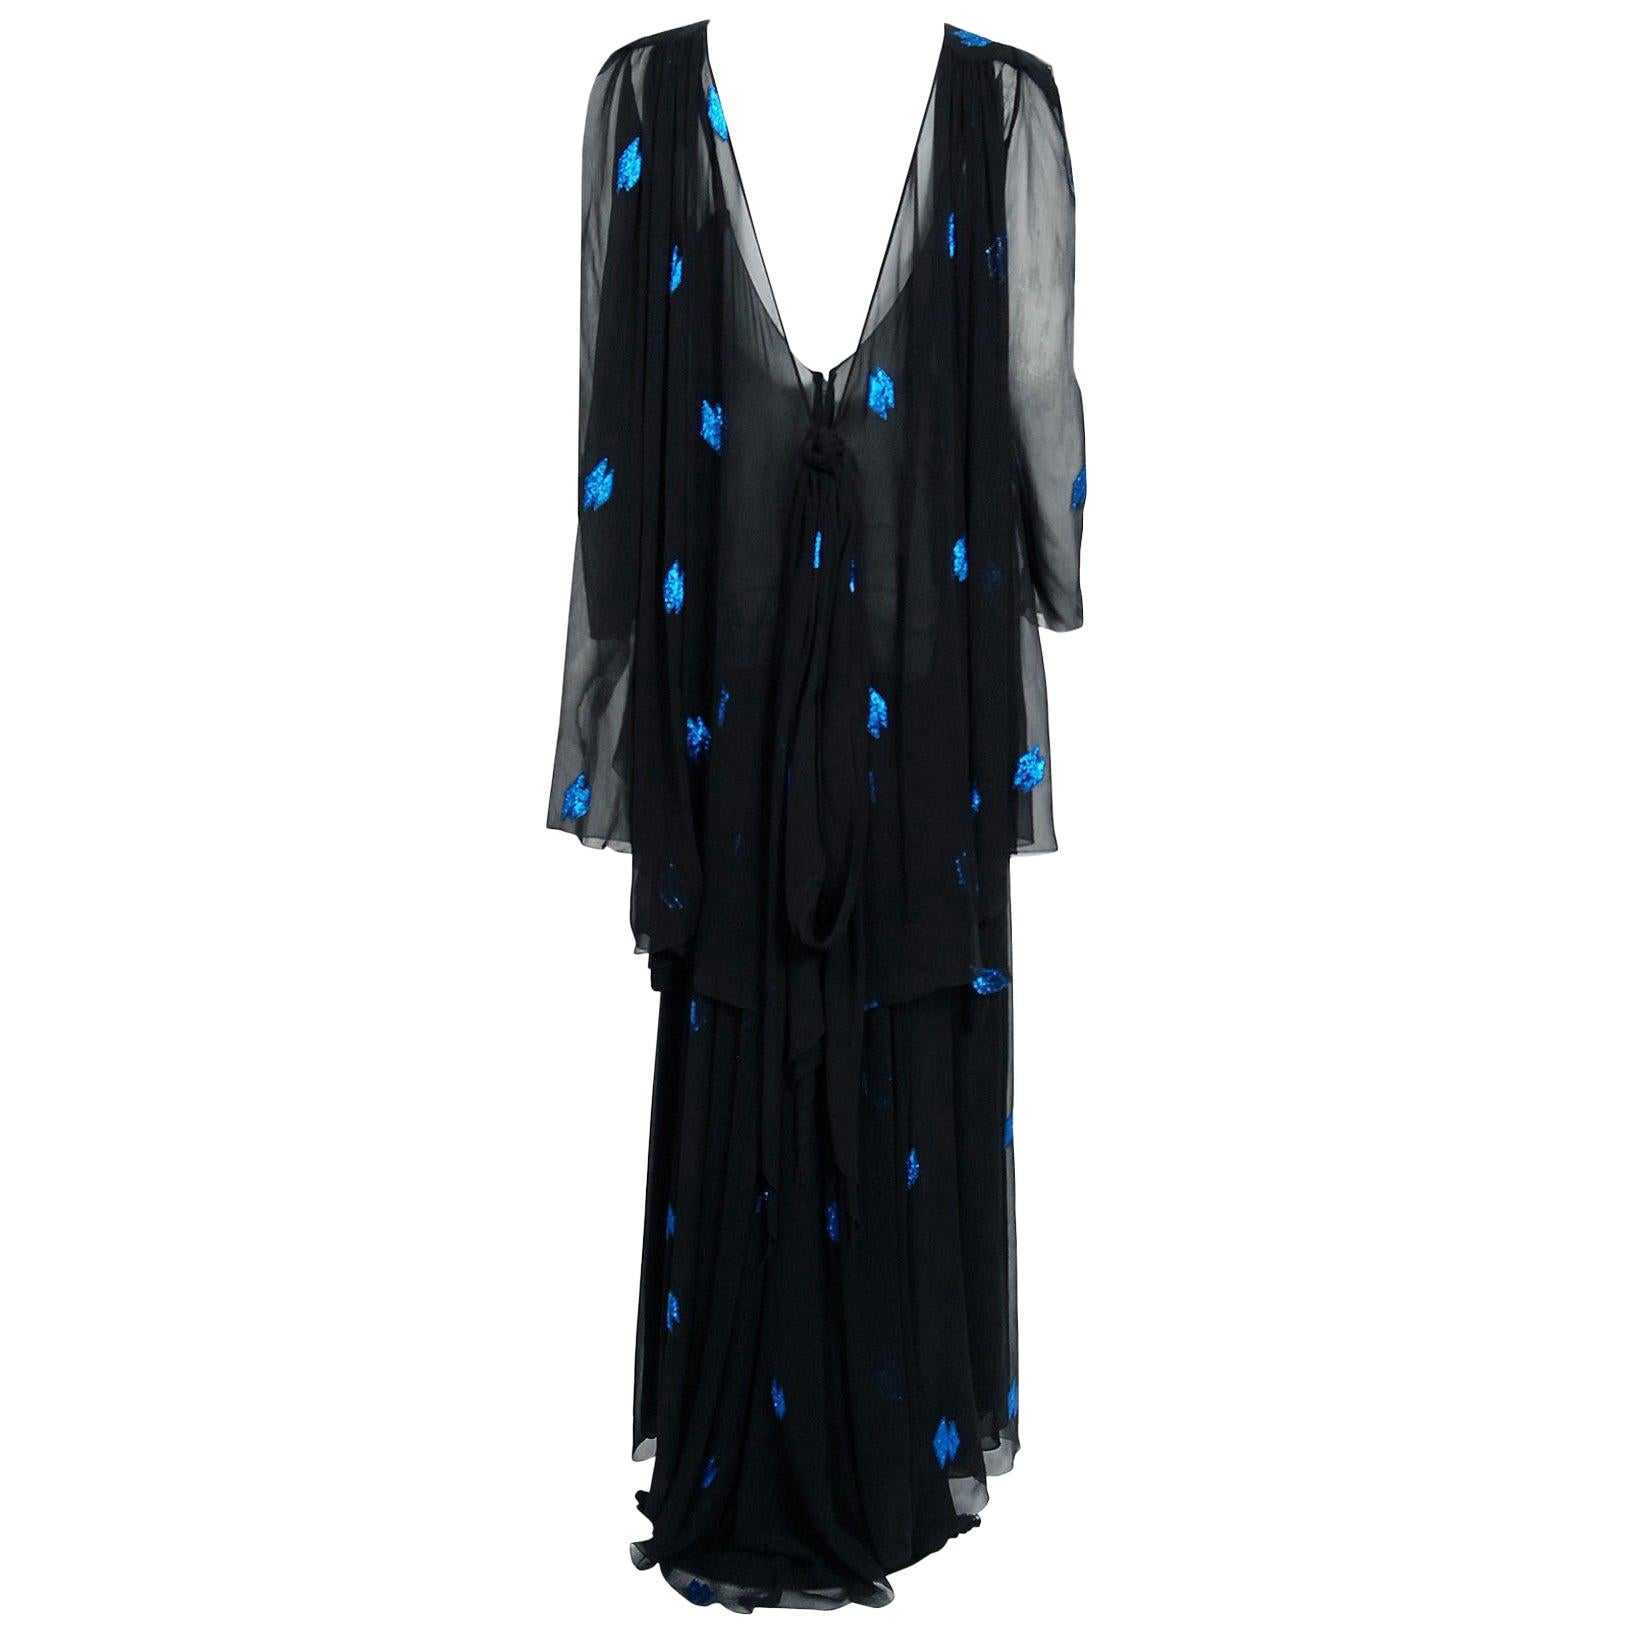 Vintage 1972 Christian Dior Metallic Black & Blue Silk Backless Draped Gown